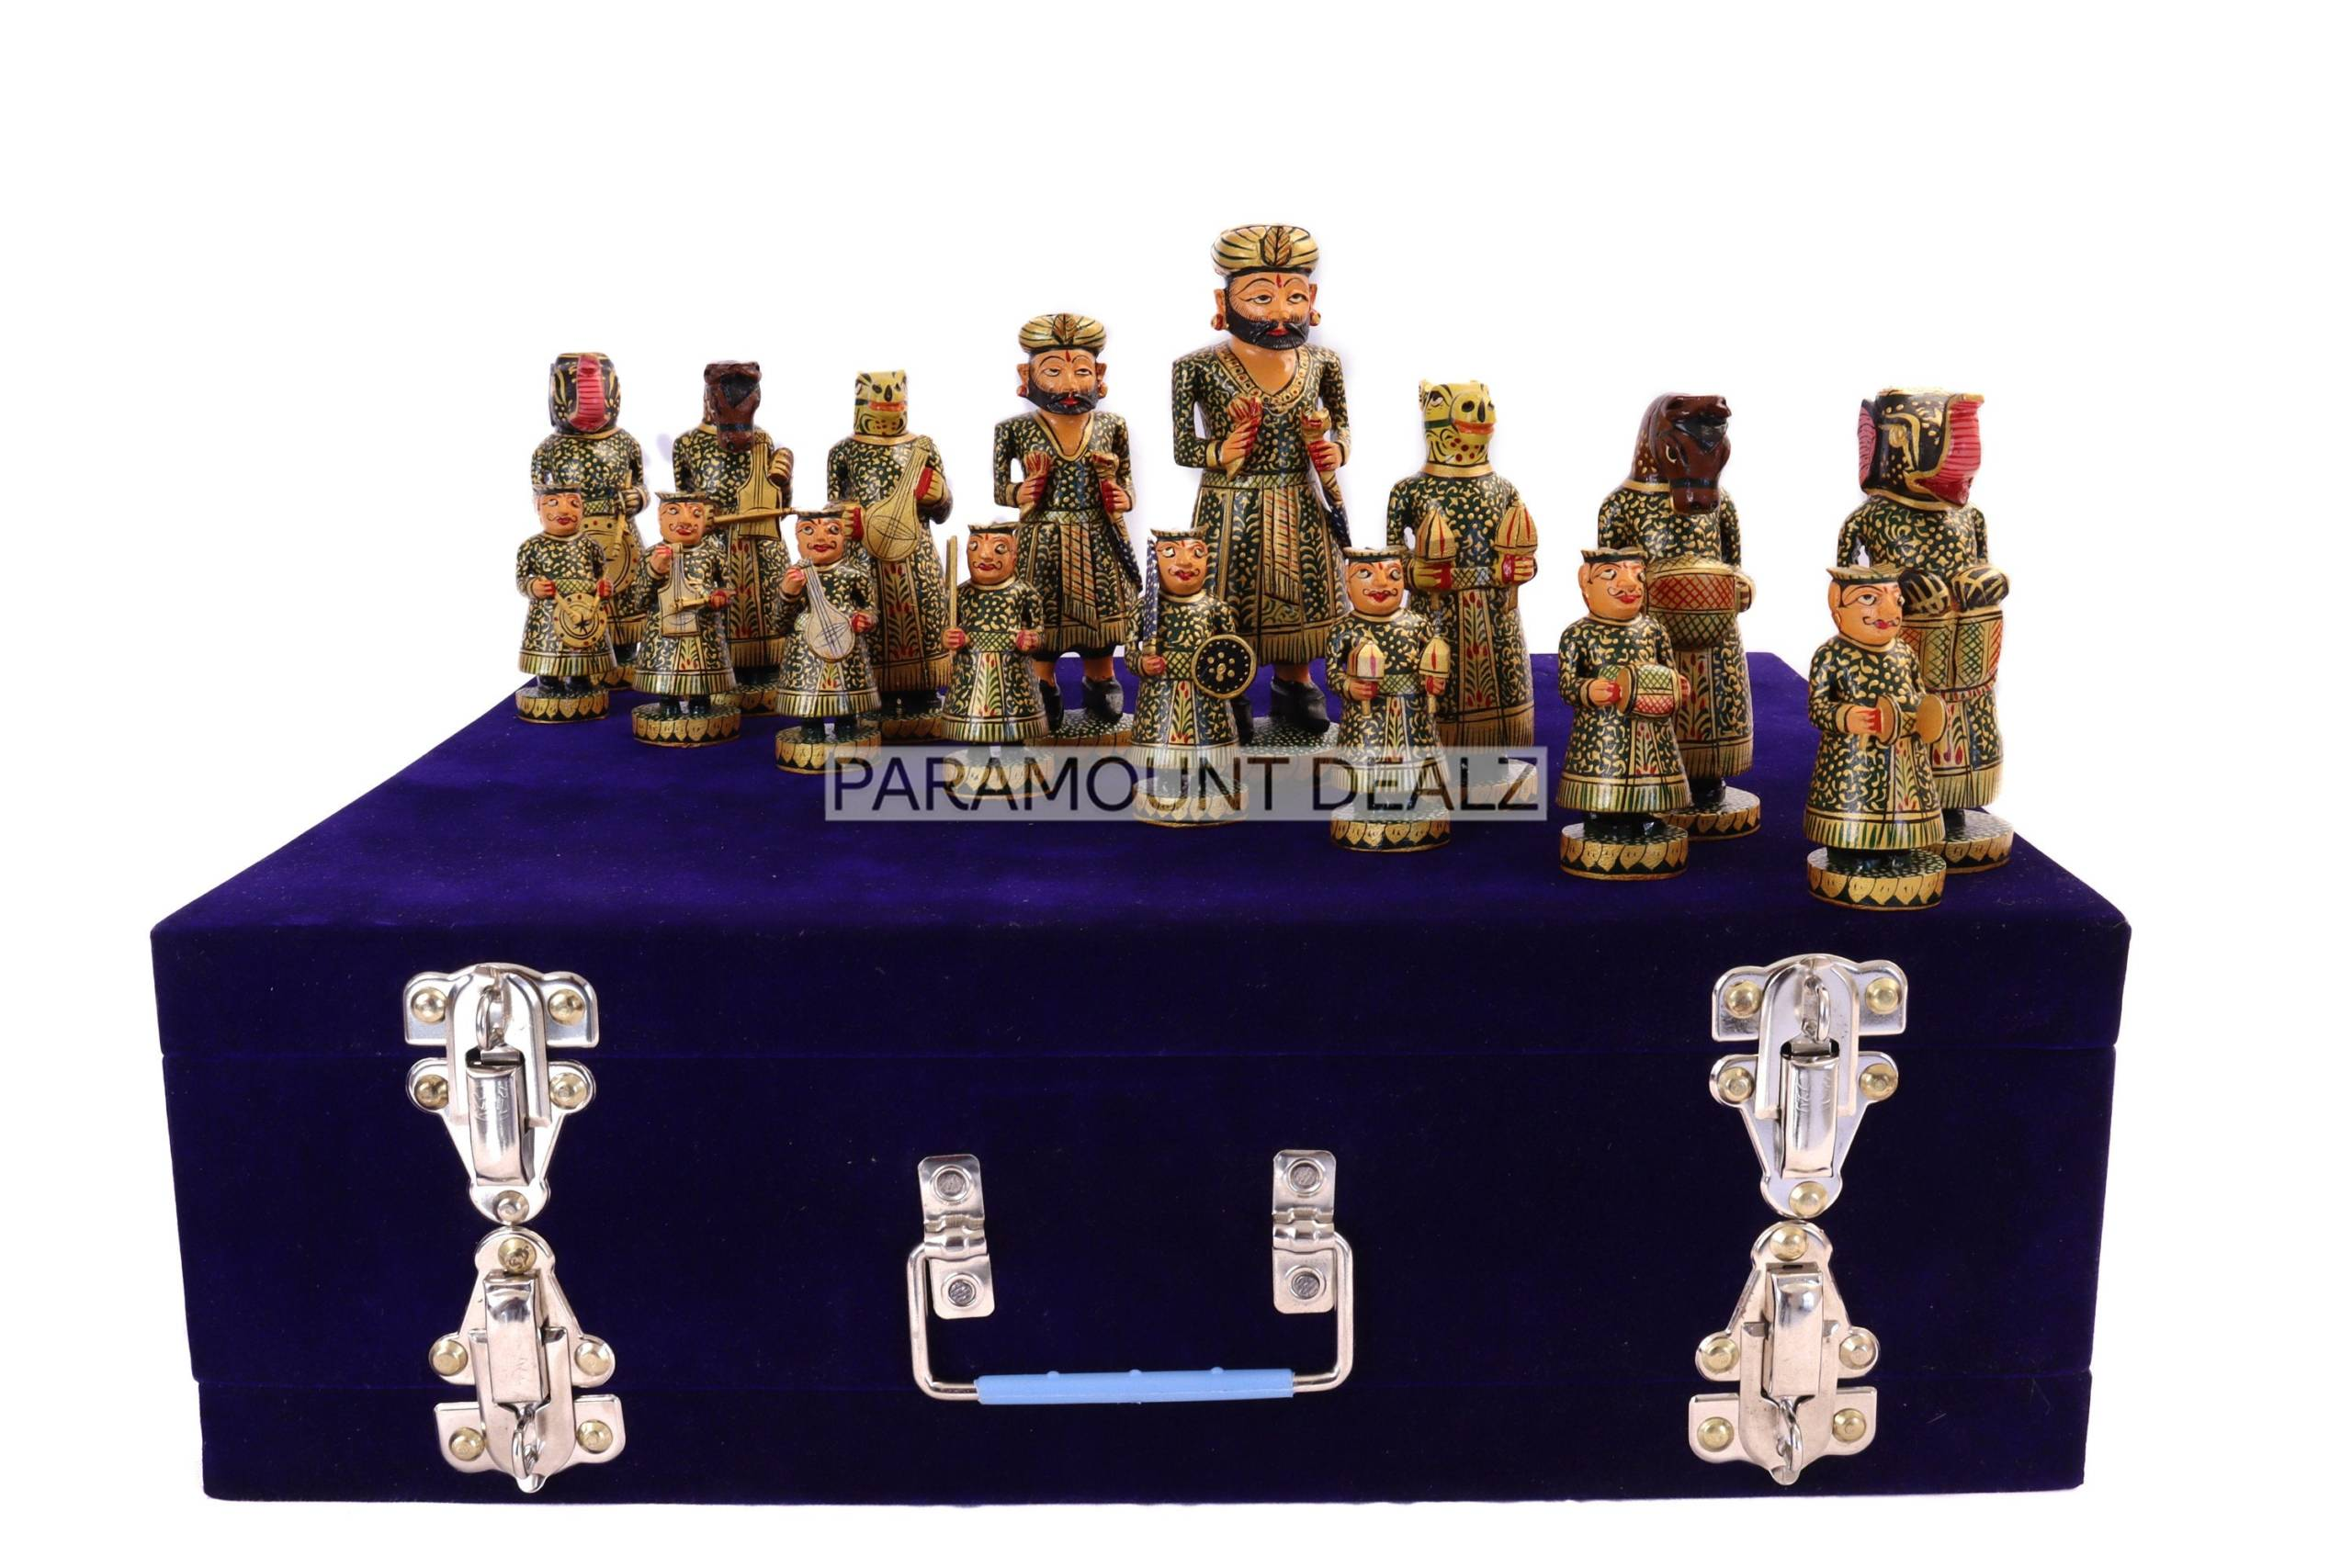 """Wooden Indian Musical Theme Chess Broad Pieces - 6"""" Handcrafted Chess Pieces Set   Includes Wooden Chess Pieces and Box   Perfect Gifting for All Occasions"""